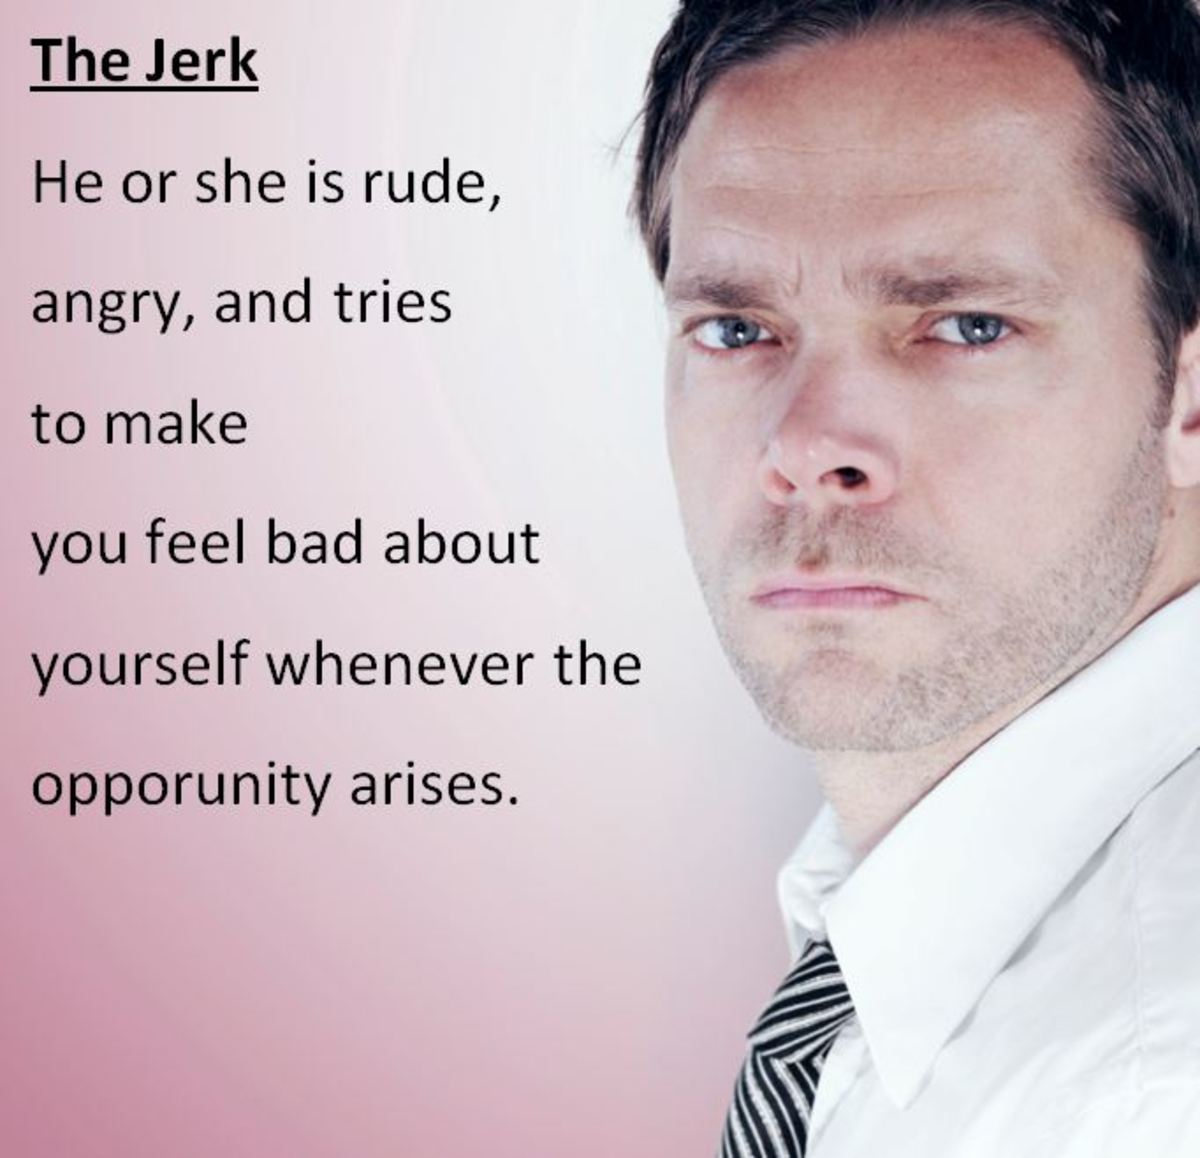 dealing with difficult people disrespectful jerk